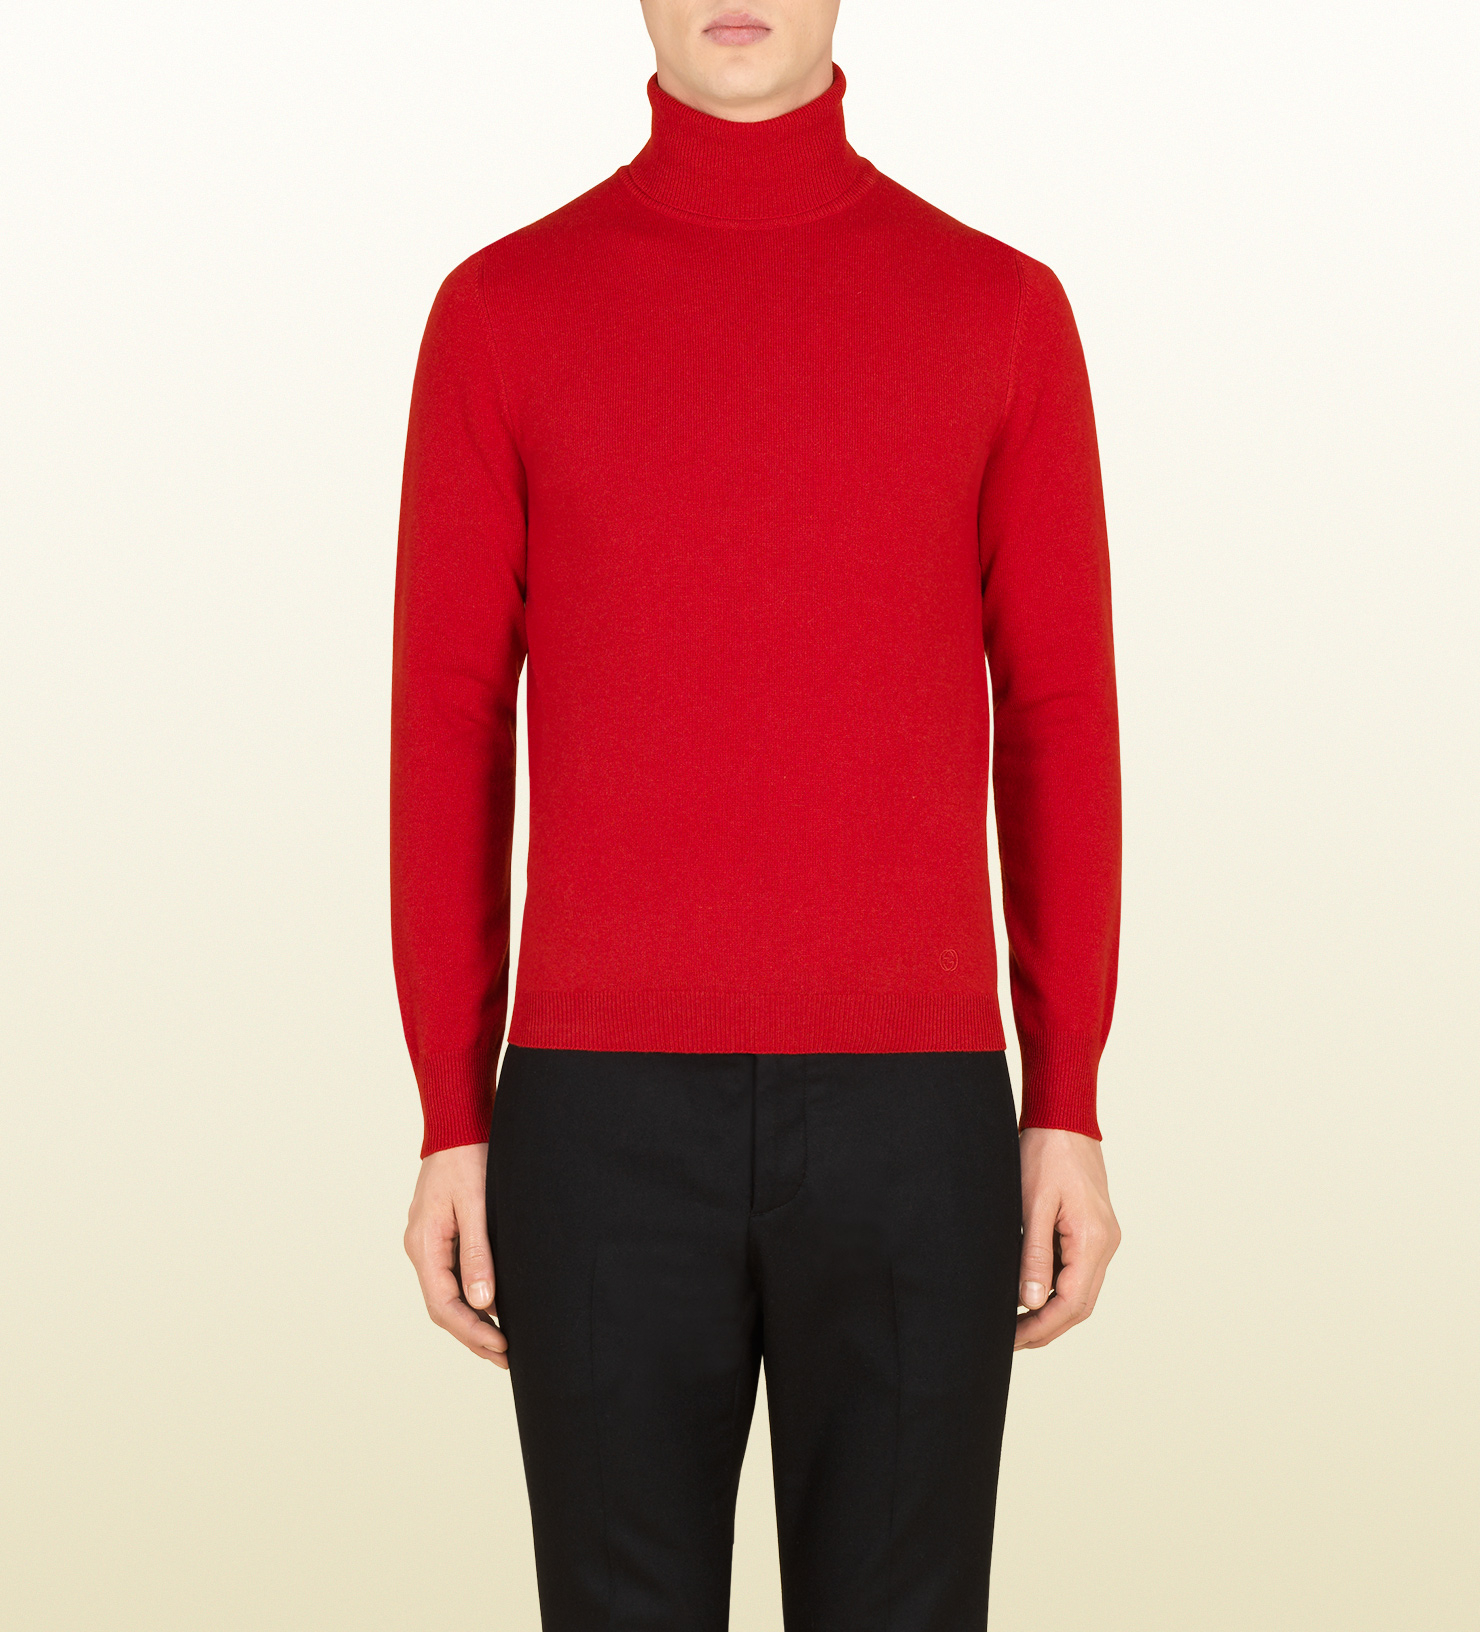 Mens Red Cashmere Turtleneck Sweater - Cardigan With Buttons